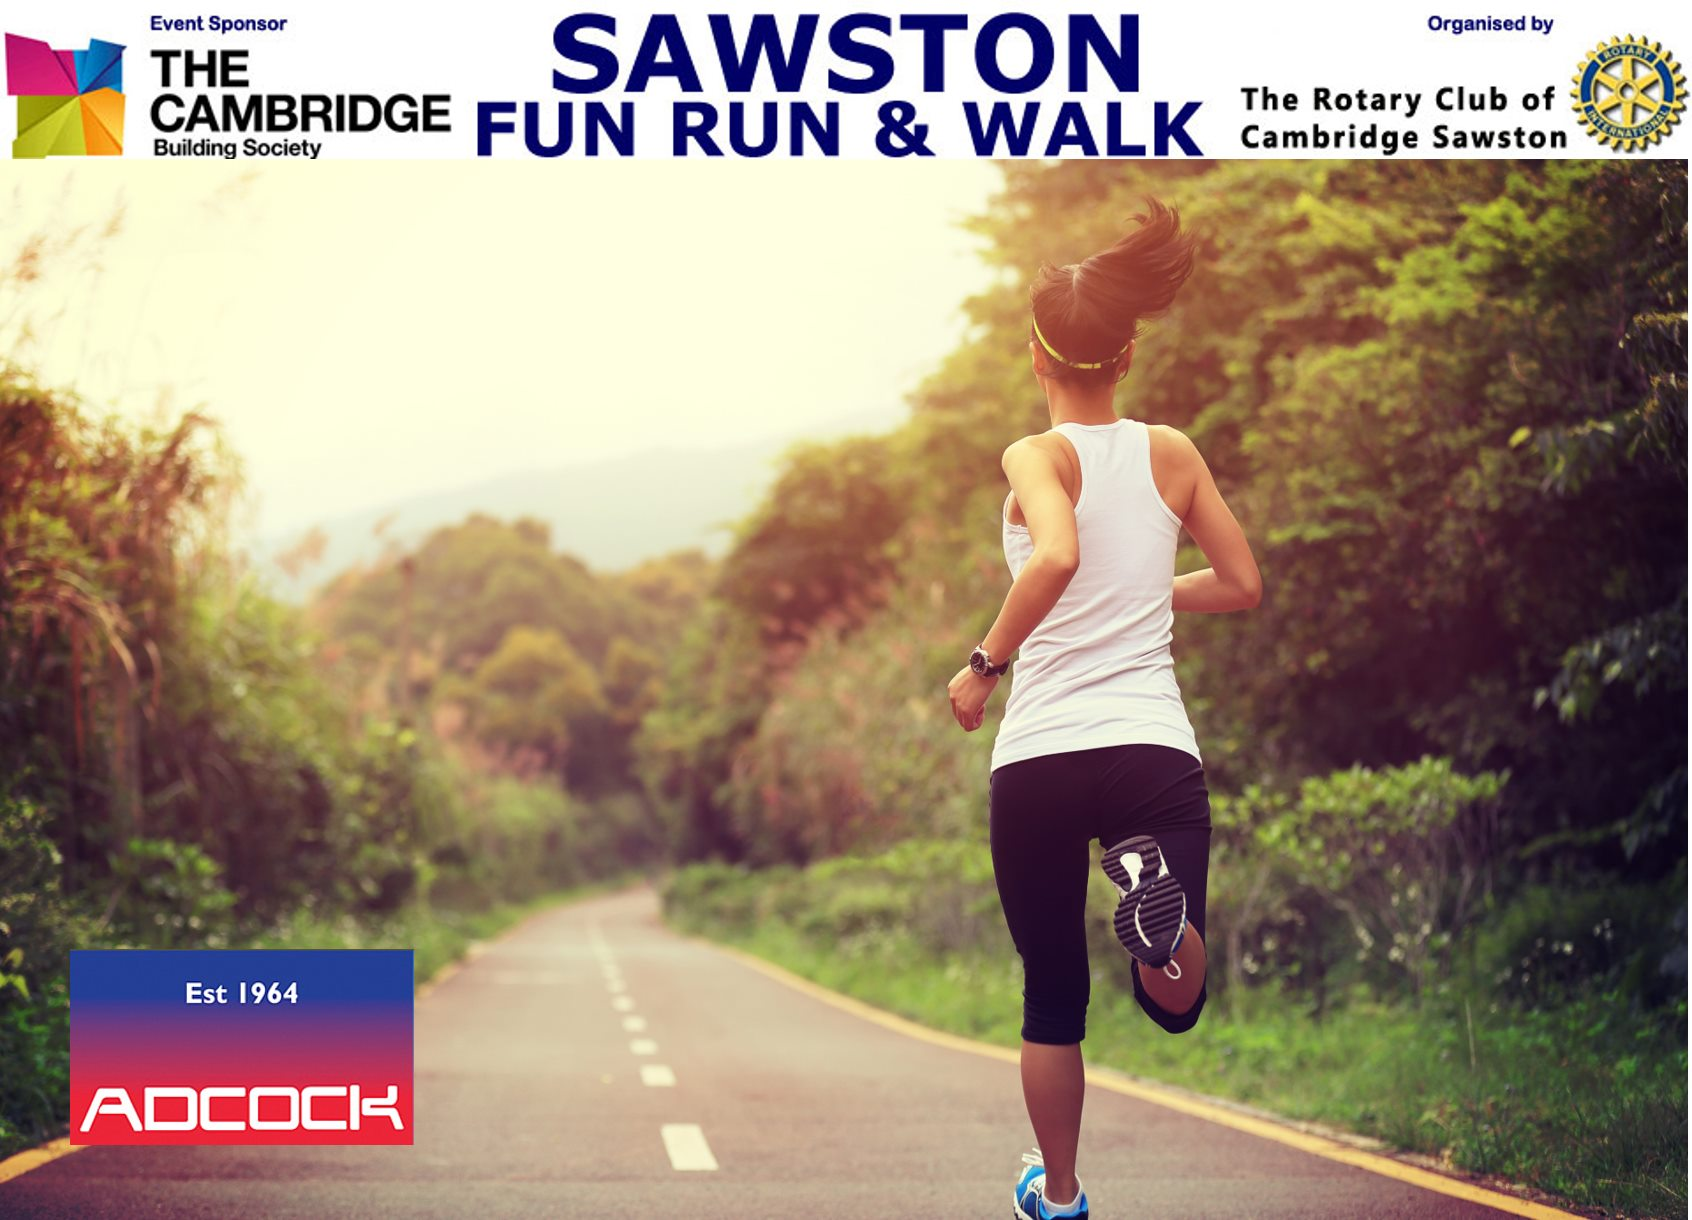 Sawston Fun Run & Walk 2020